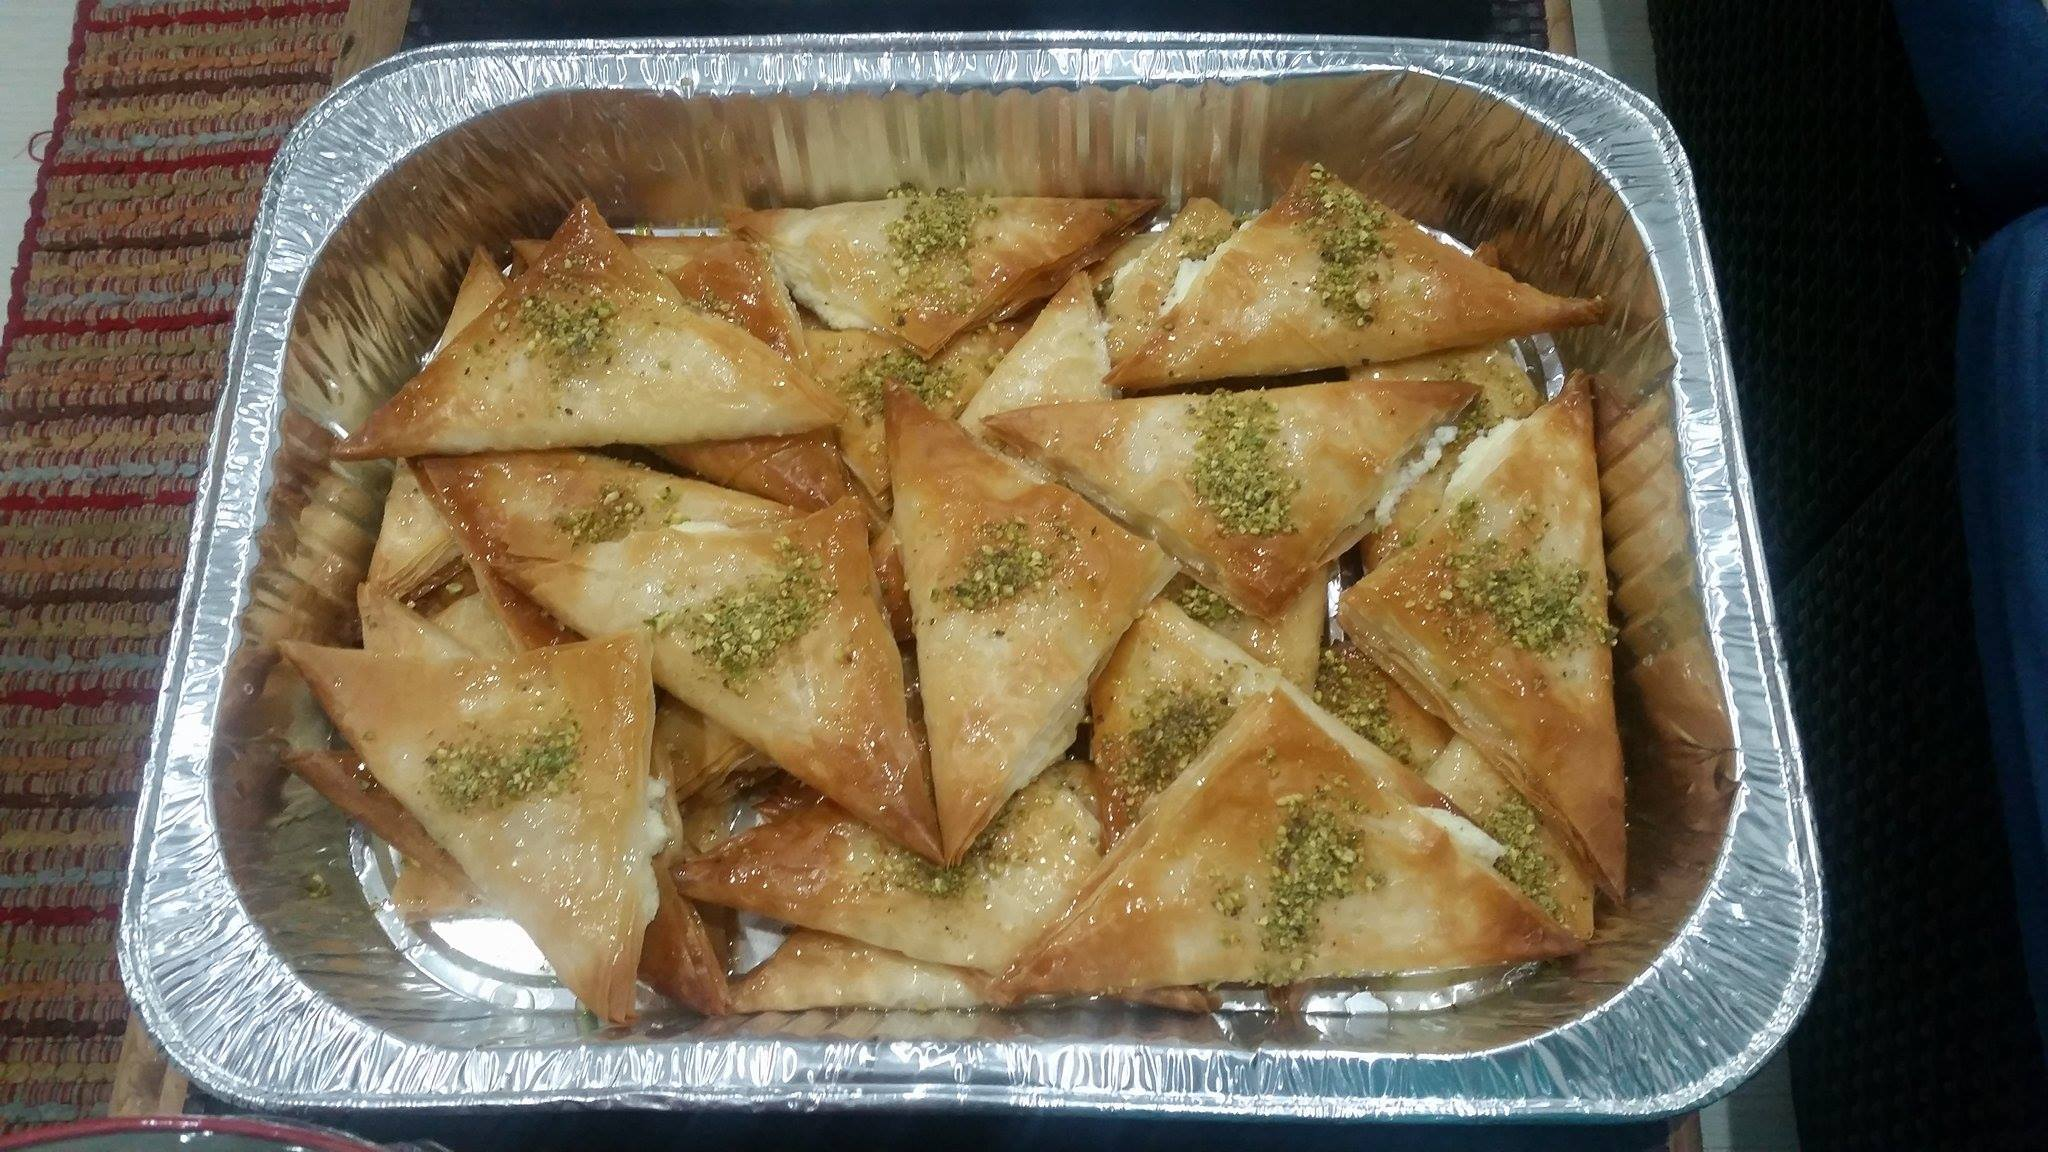 Delicious Warbaat catered by Tayybeh for PeaceHack by SFU and PeaceGeeks